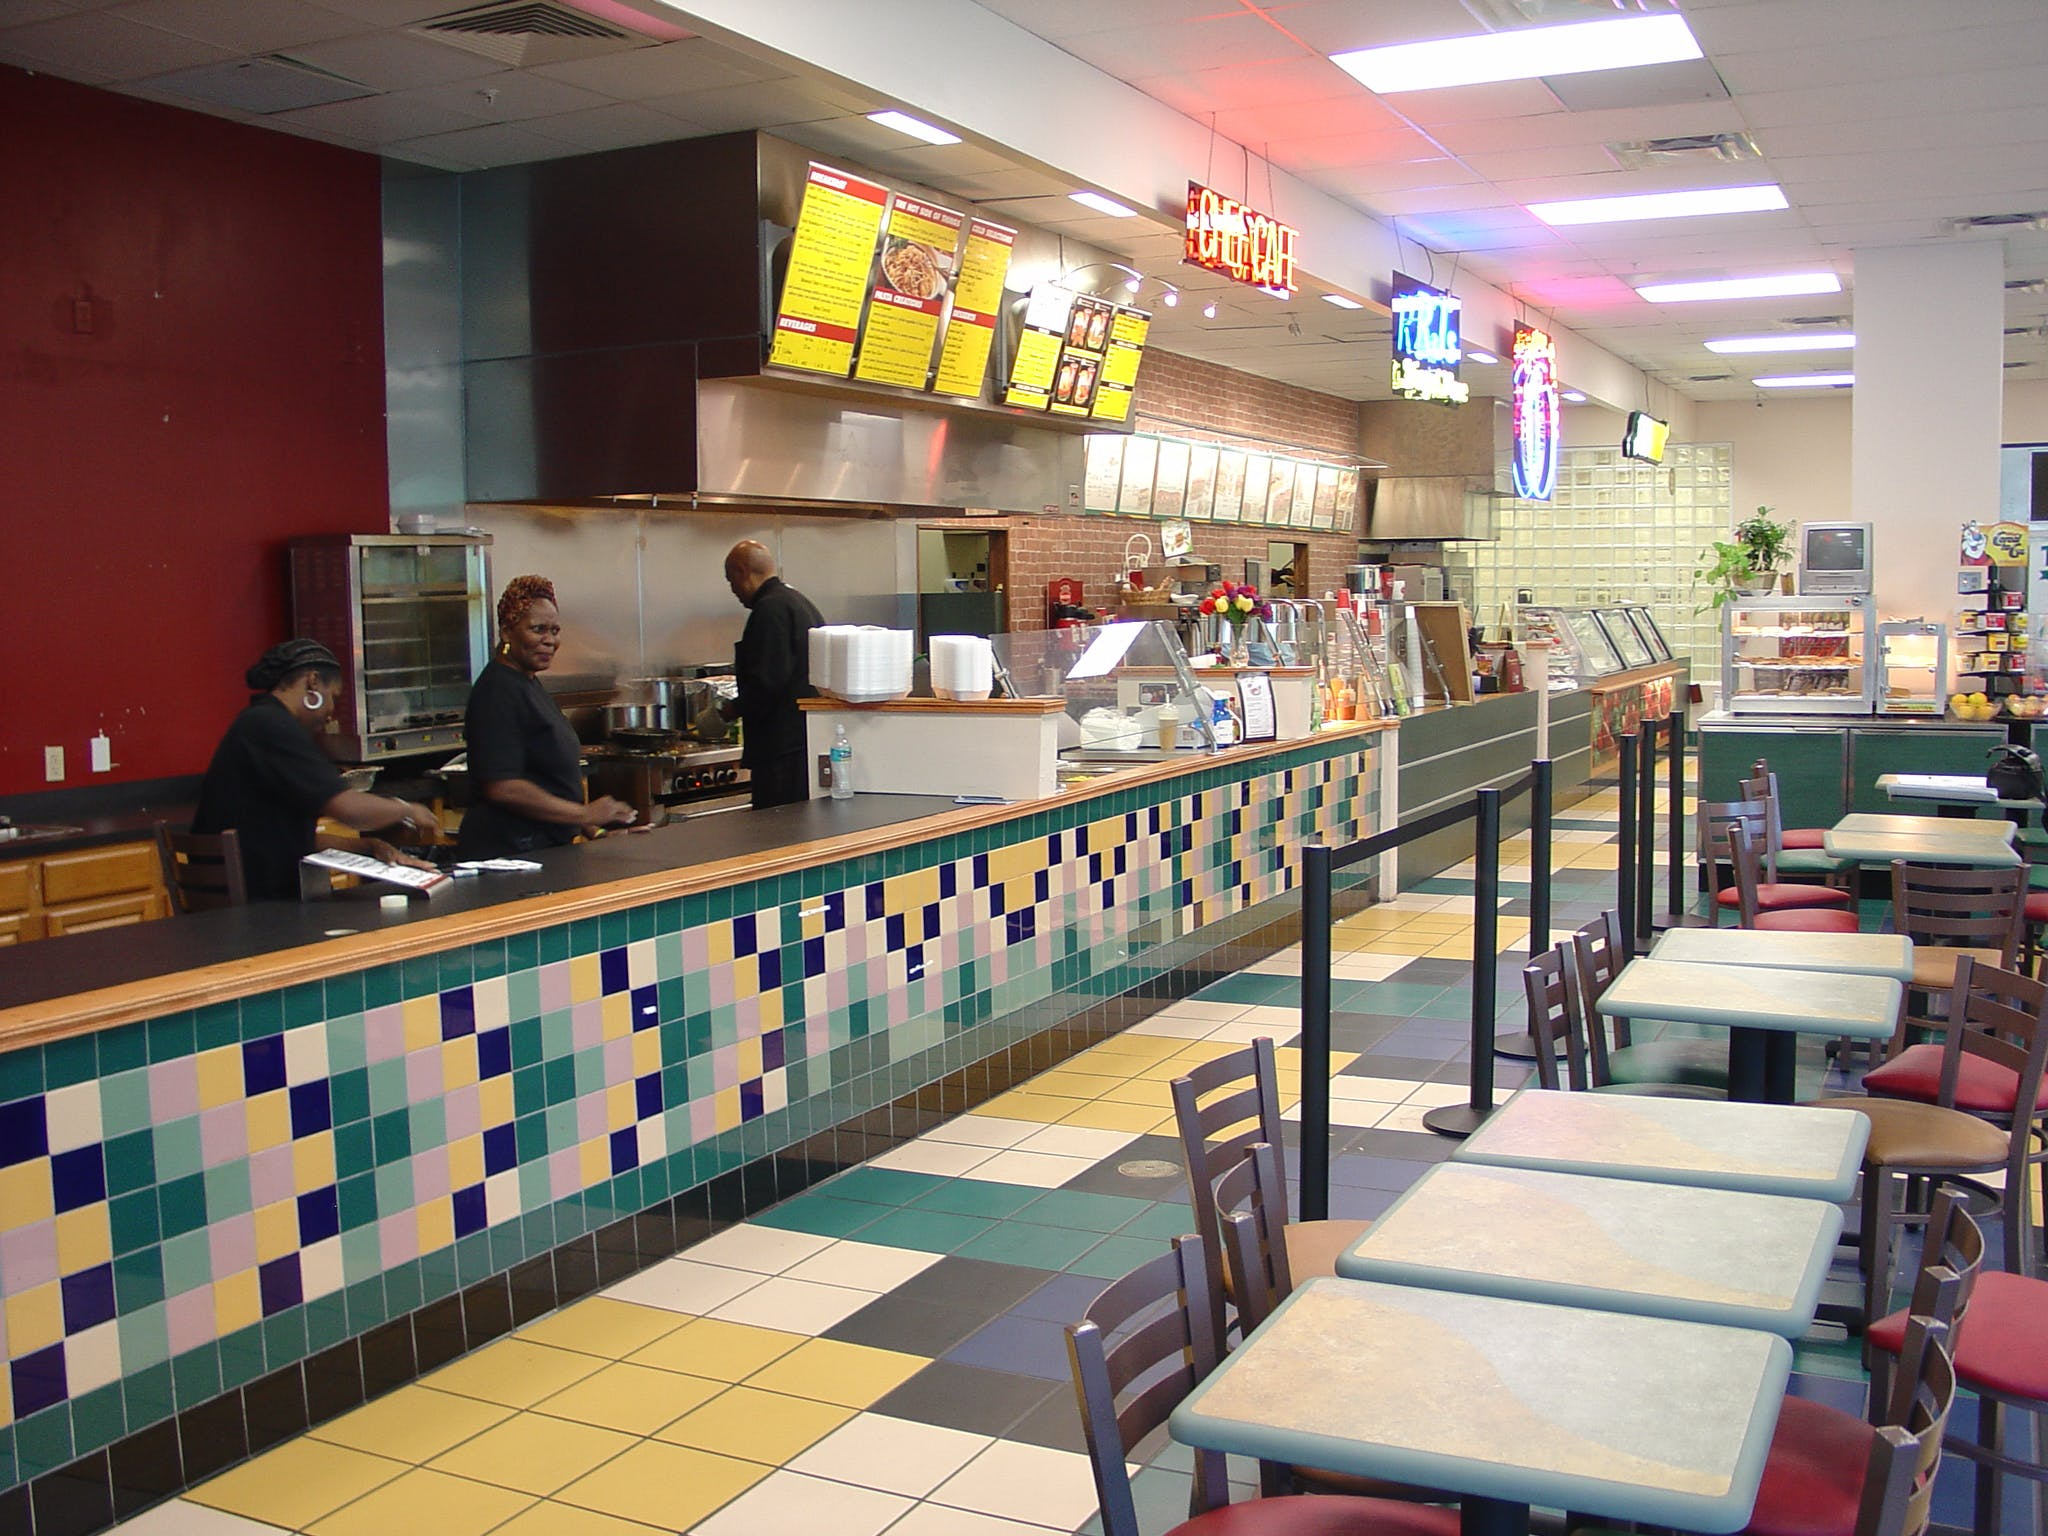 subway interior food court james wells archinect. Black Bedroom Furniture Sets. Home Design Ideas